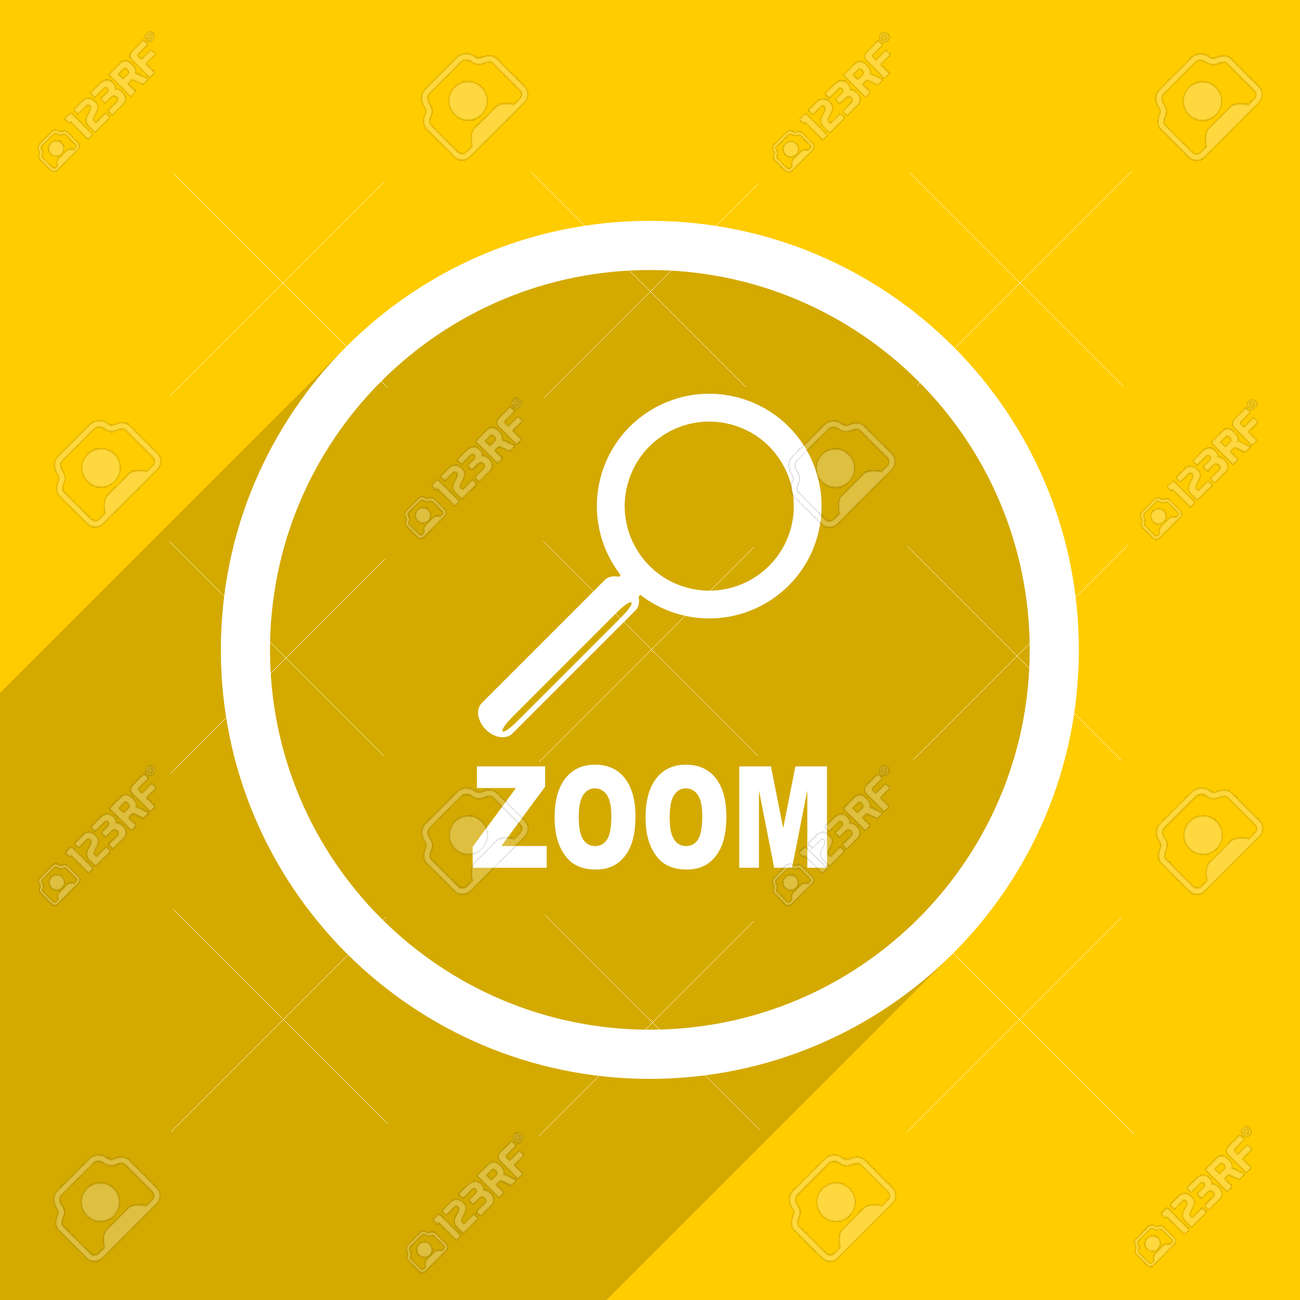 Yellow Flat Design Zoom Web Modern Icon For Mobile App And Internet Stock Photo Picture And Royalty Free Image Image 56767127 Free vector icons in svg, psd, png, eps and icon font. yellow flat design zoom web modern icon for mobile app and internet